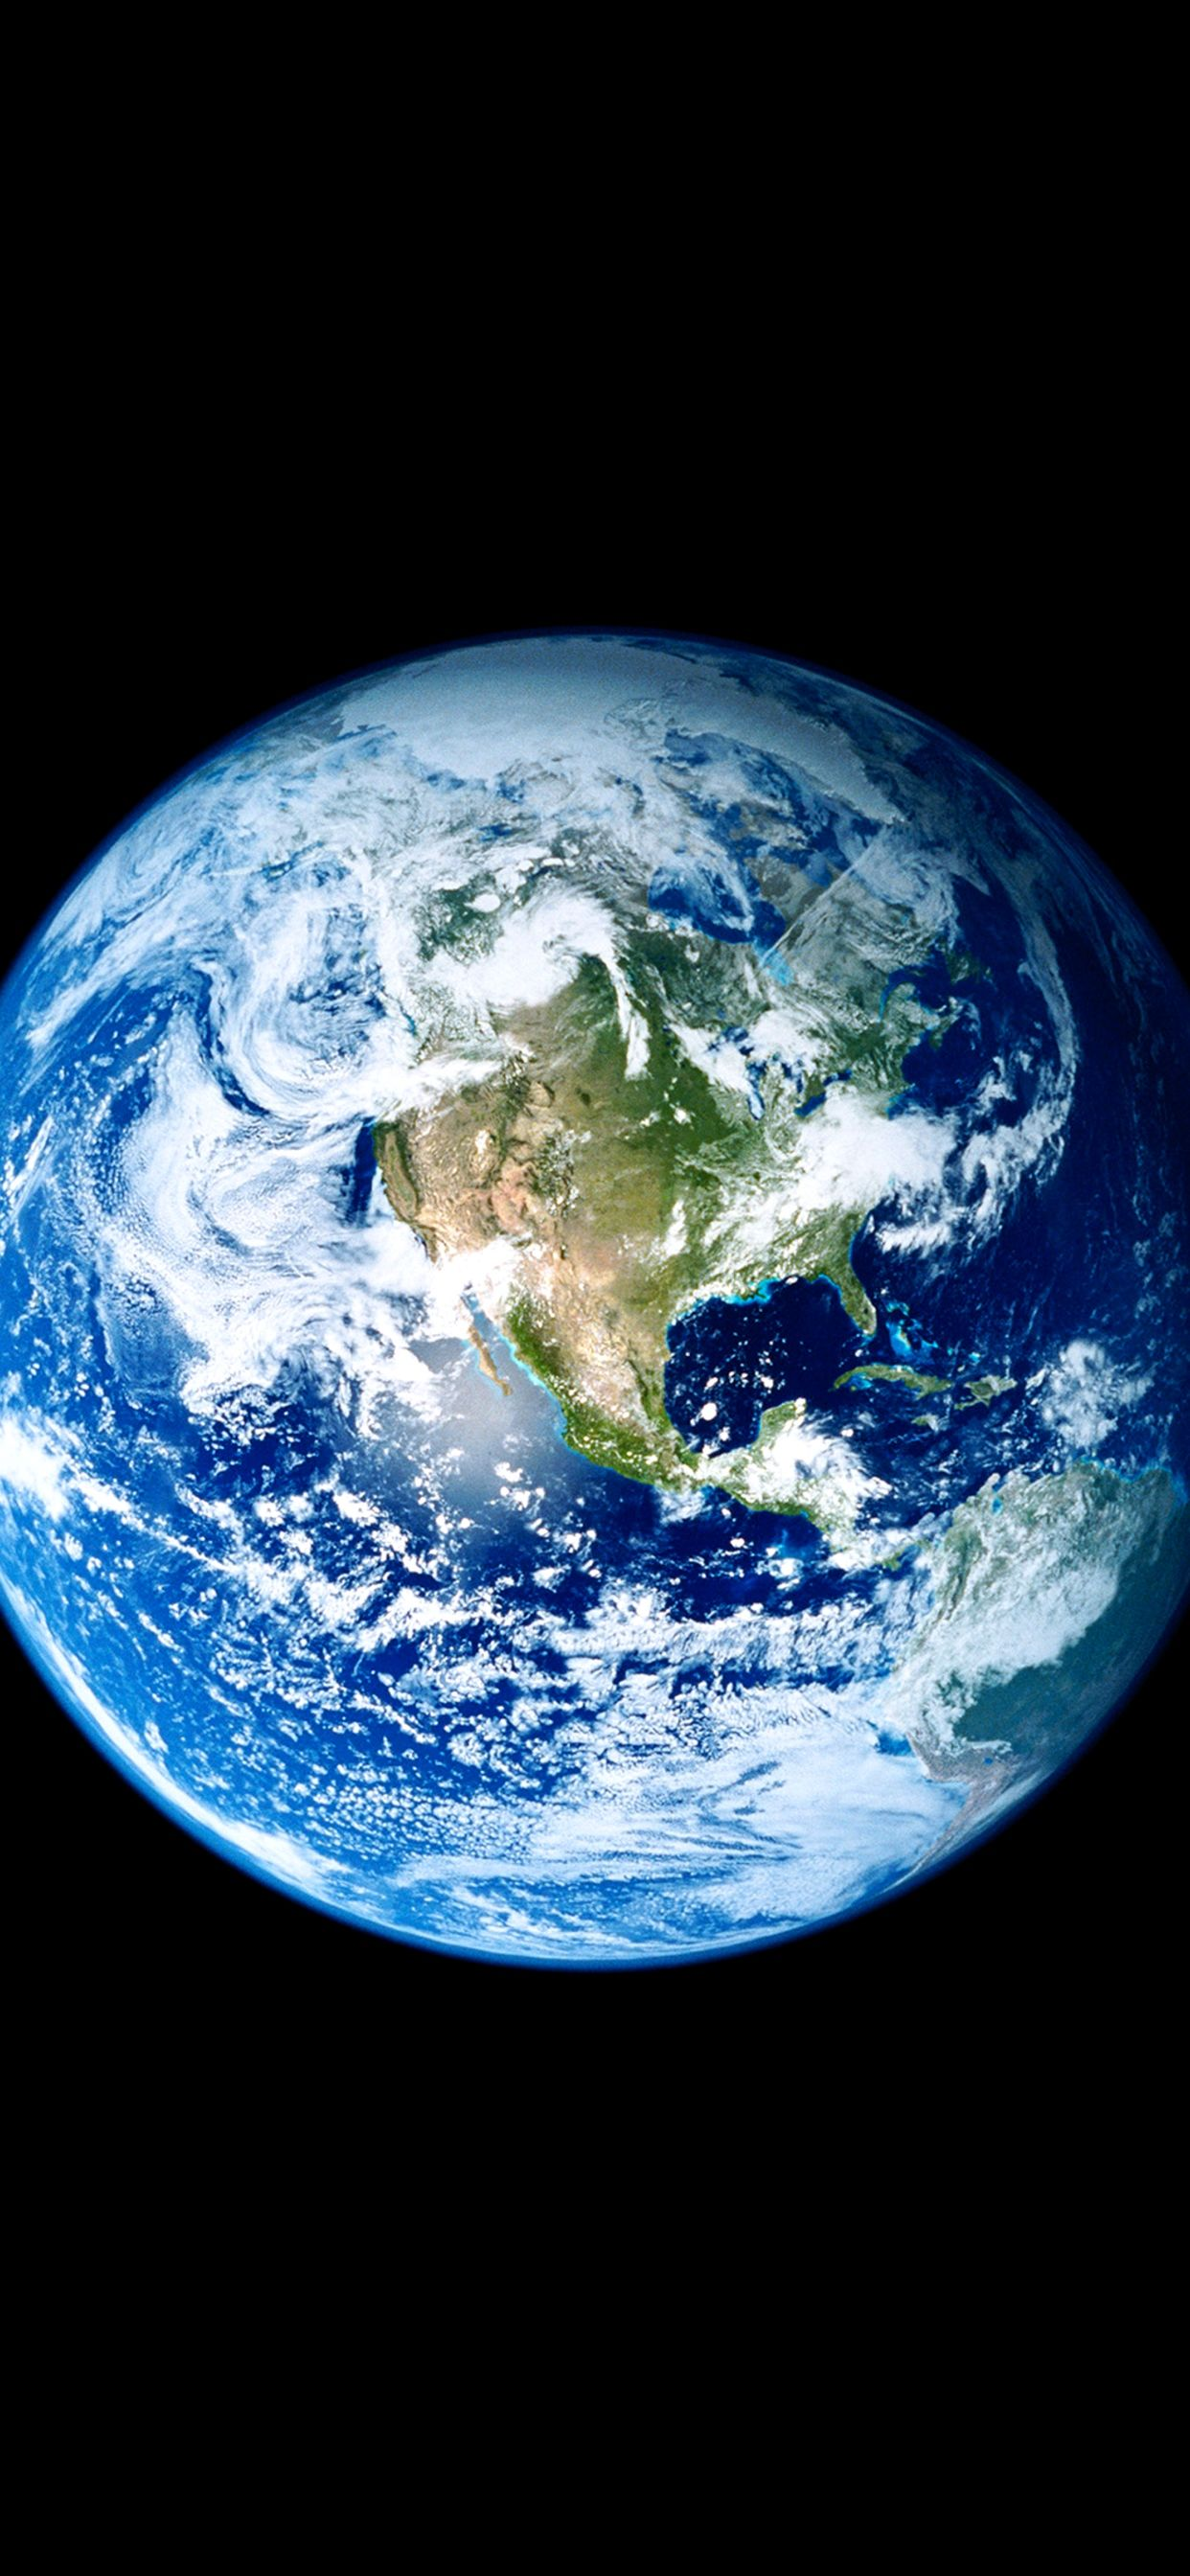 Iphone Earth Wallpaper 4k Download Gallery Iphone Wallpaper Earth Ios Wallpapers Iphone Wallpaper